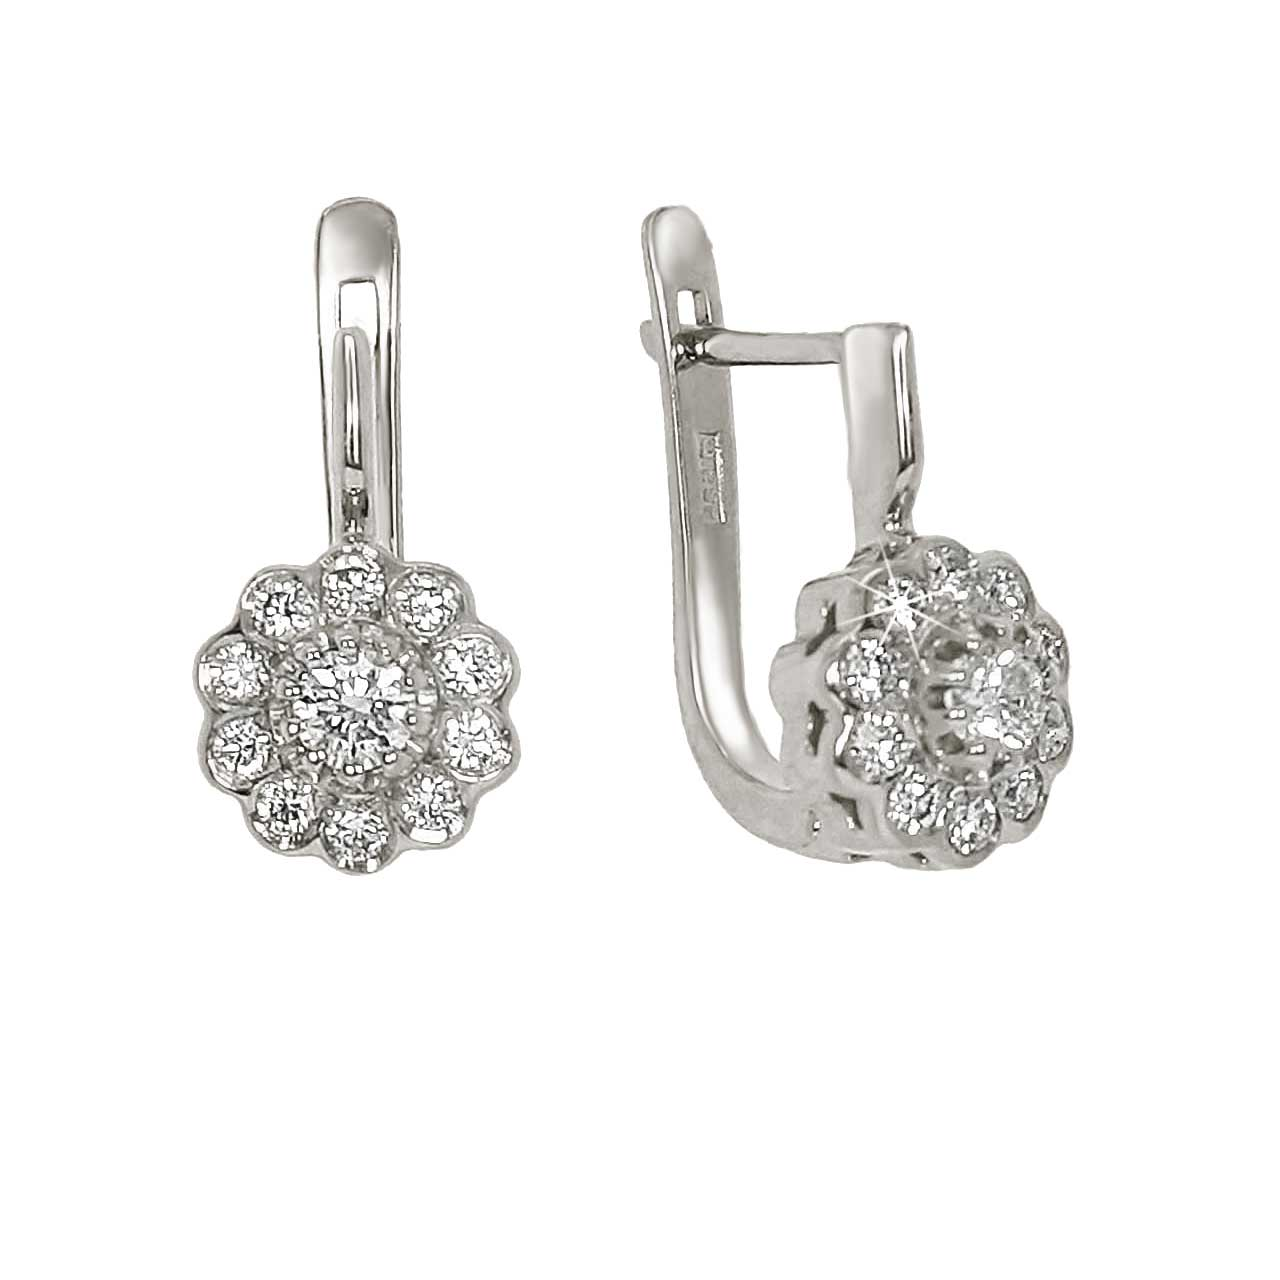 Malinka diamond earrings 1